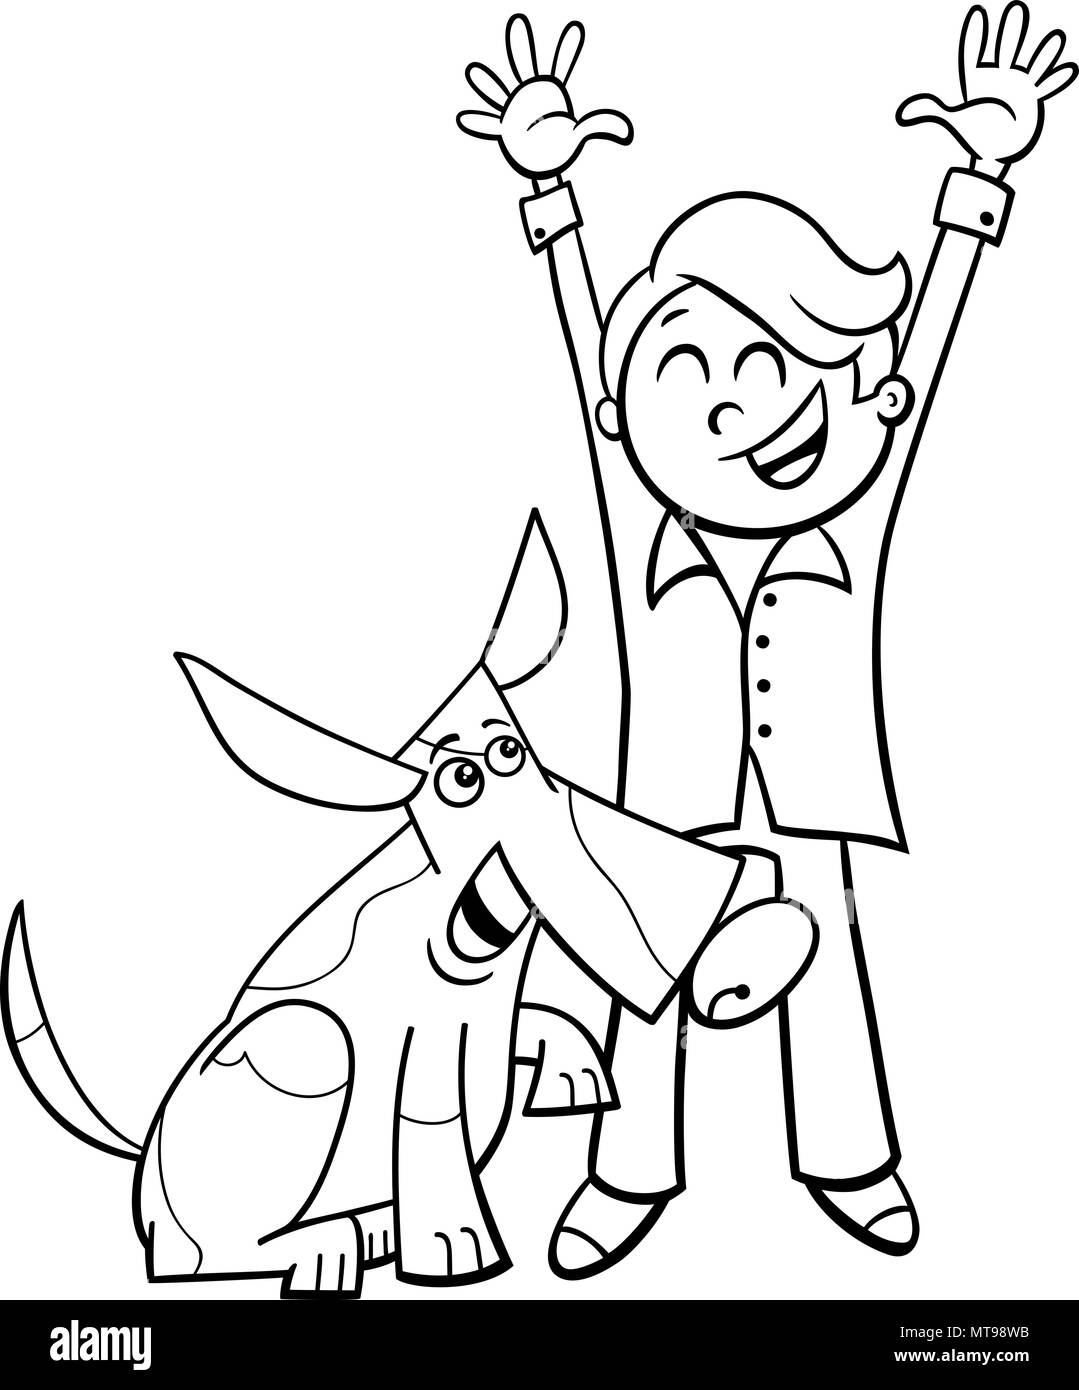 Black and White Cartoon Illustration of Little Boy with Funny Dog or ...